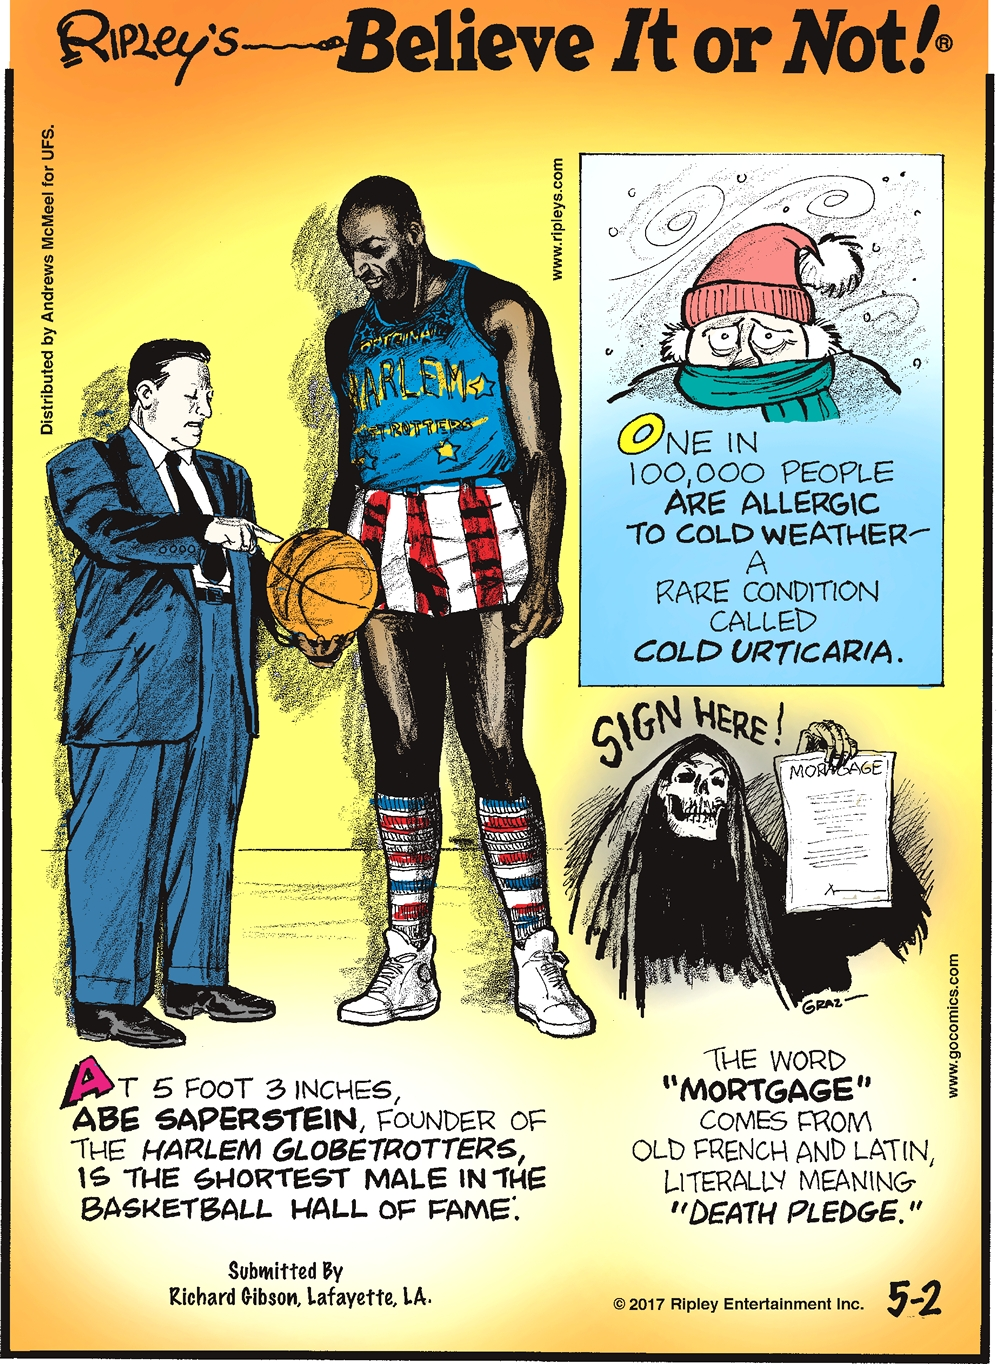 "One in 100,000 people are allergic to cold weather - a rare condition called cold urticaria.-------------------- At 5 foot 3 inches, Abe Saperstein, founder of the Harlem Globetrotters, is the shortest male in the Basketball Hall of Fame. Submitted by Richard Gibson, Lafayettte, LA.-------------------- The word ""mortgage"" comes from old French and Latin, literally meaning ""death pledge."""